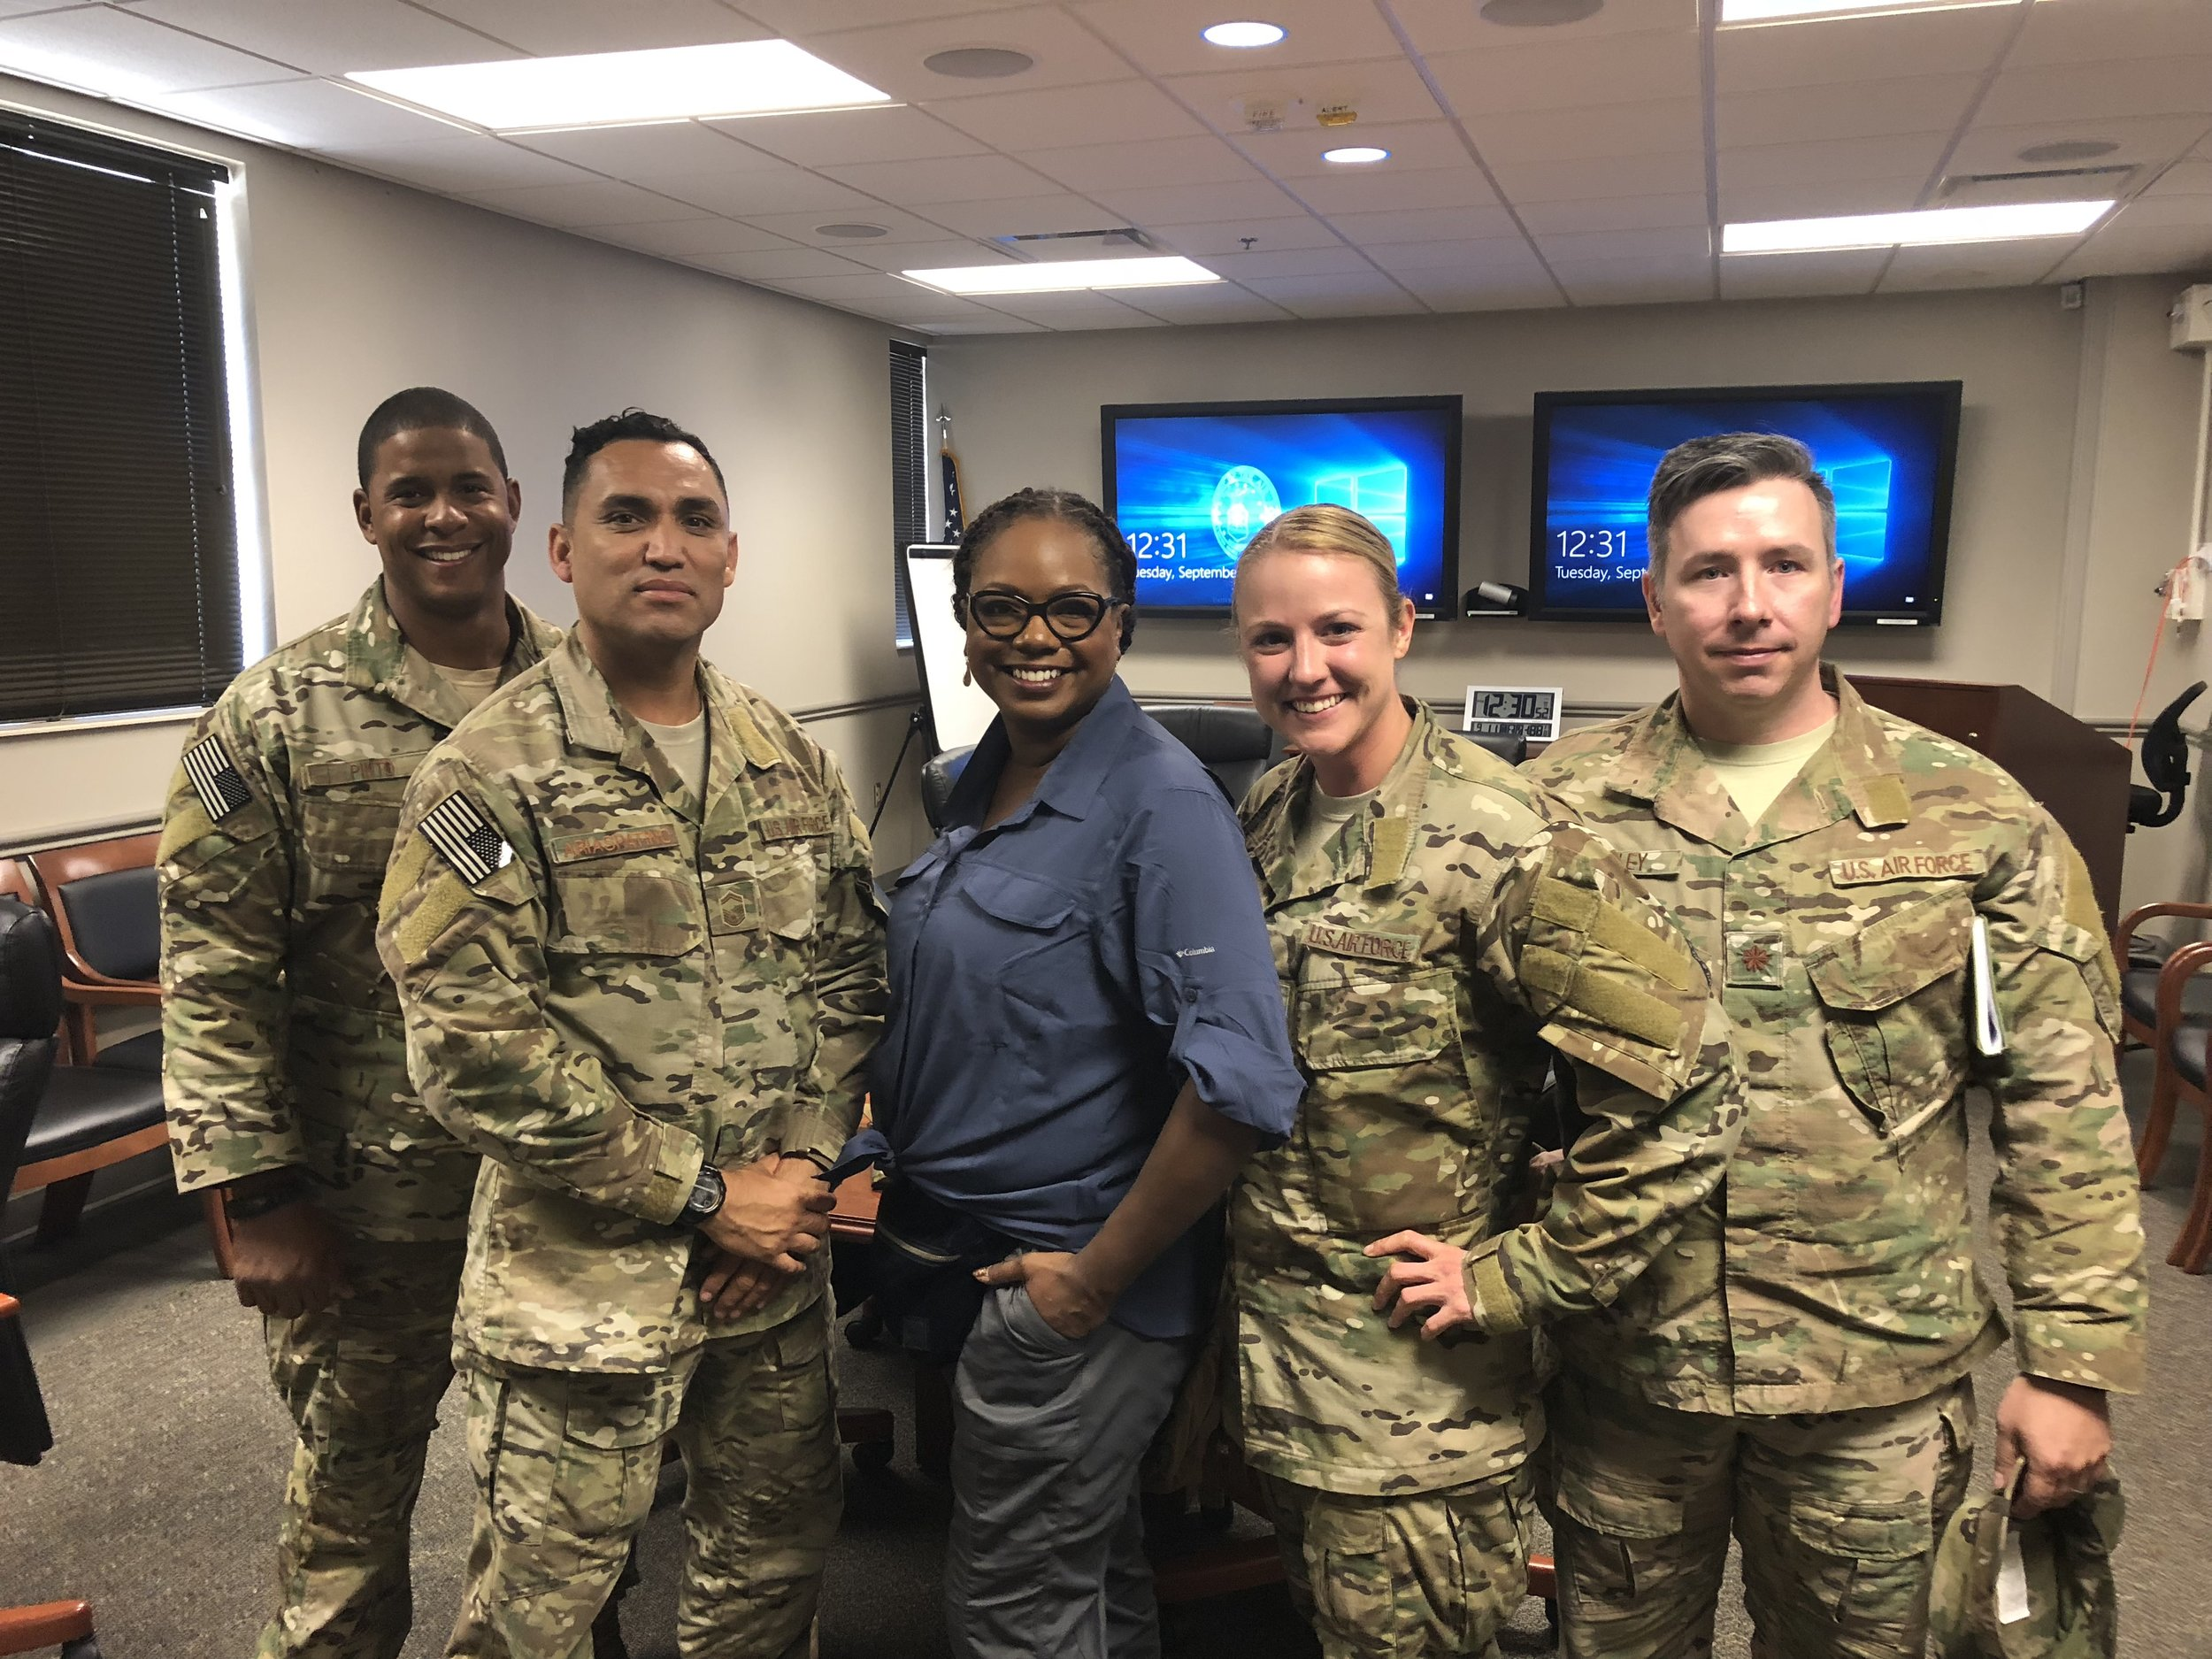 Host Wendy Calhoun with Regan and members of the 720th Special Operations Surgical Team at AFSOC, Hurlburt Field, FL.